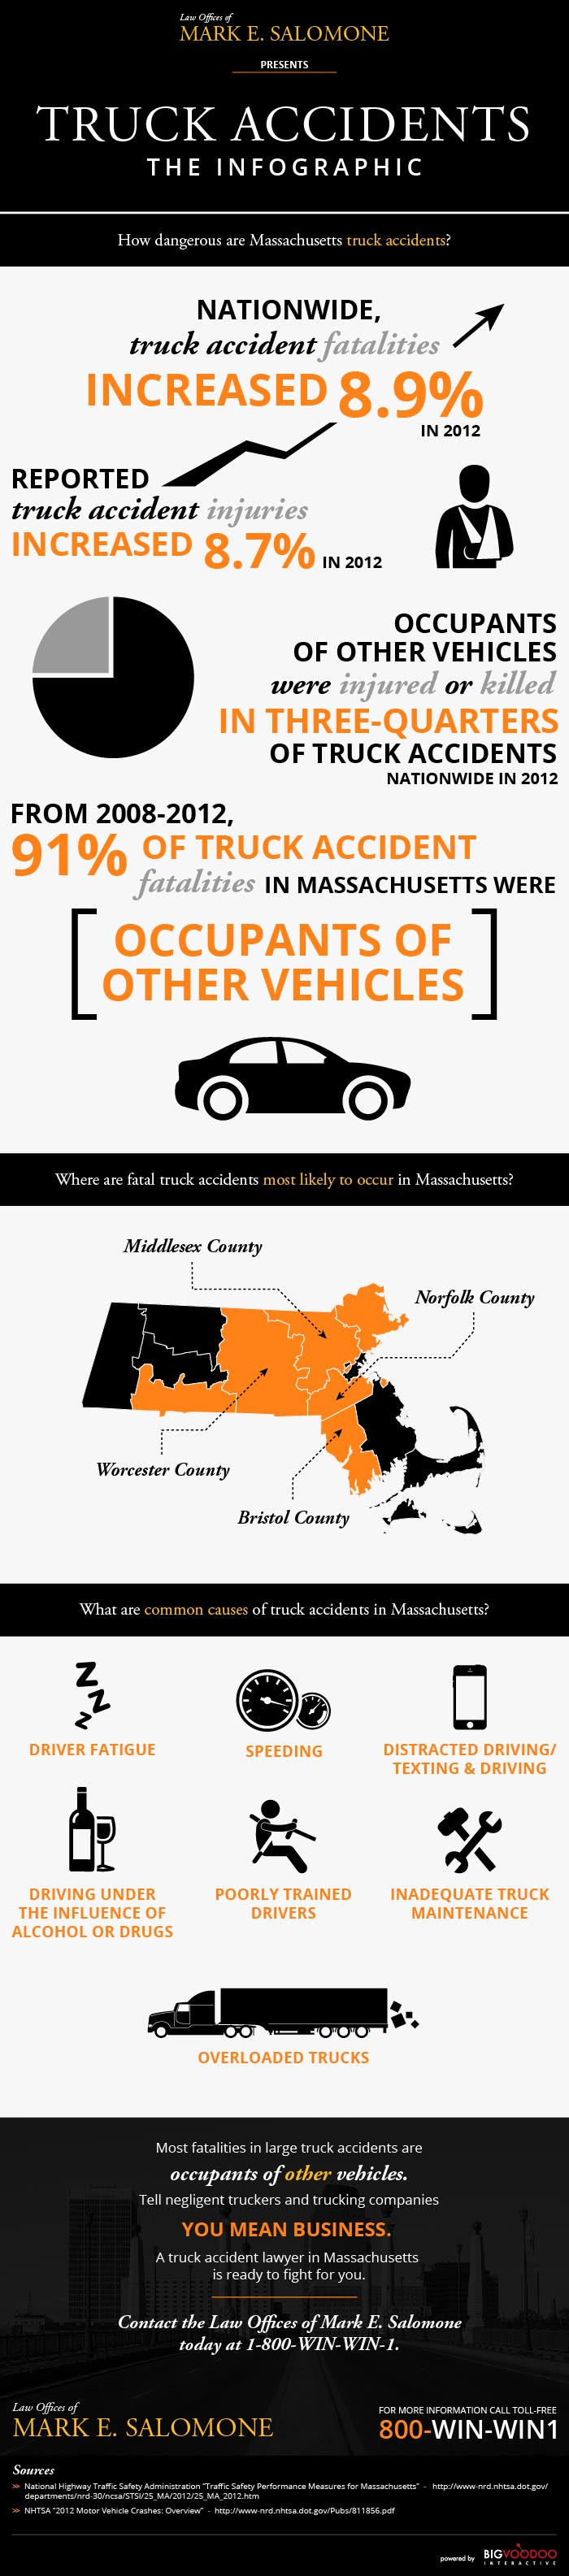 Springfield MA Truck Accident Lawyer - Infographic